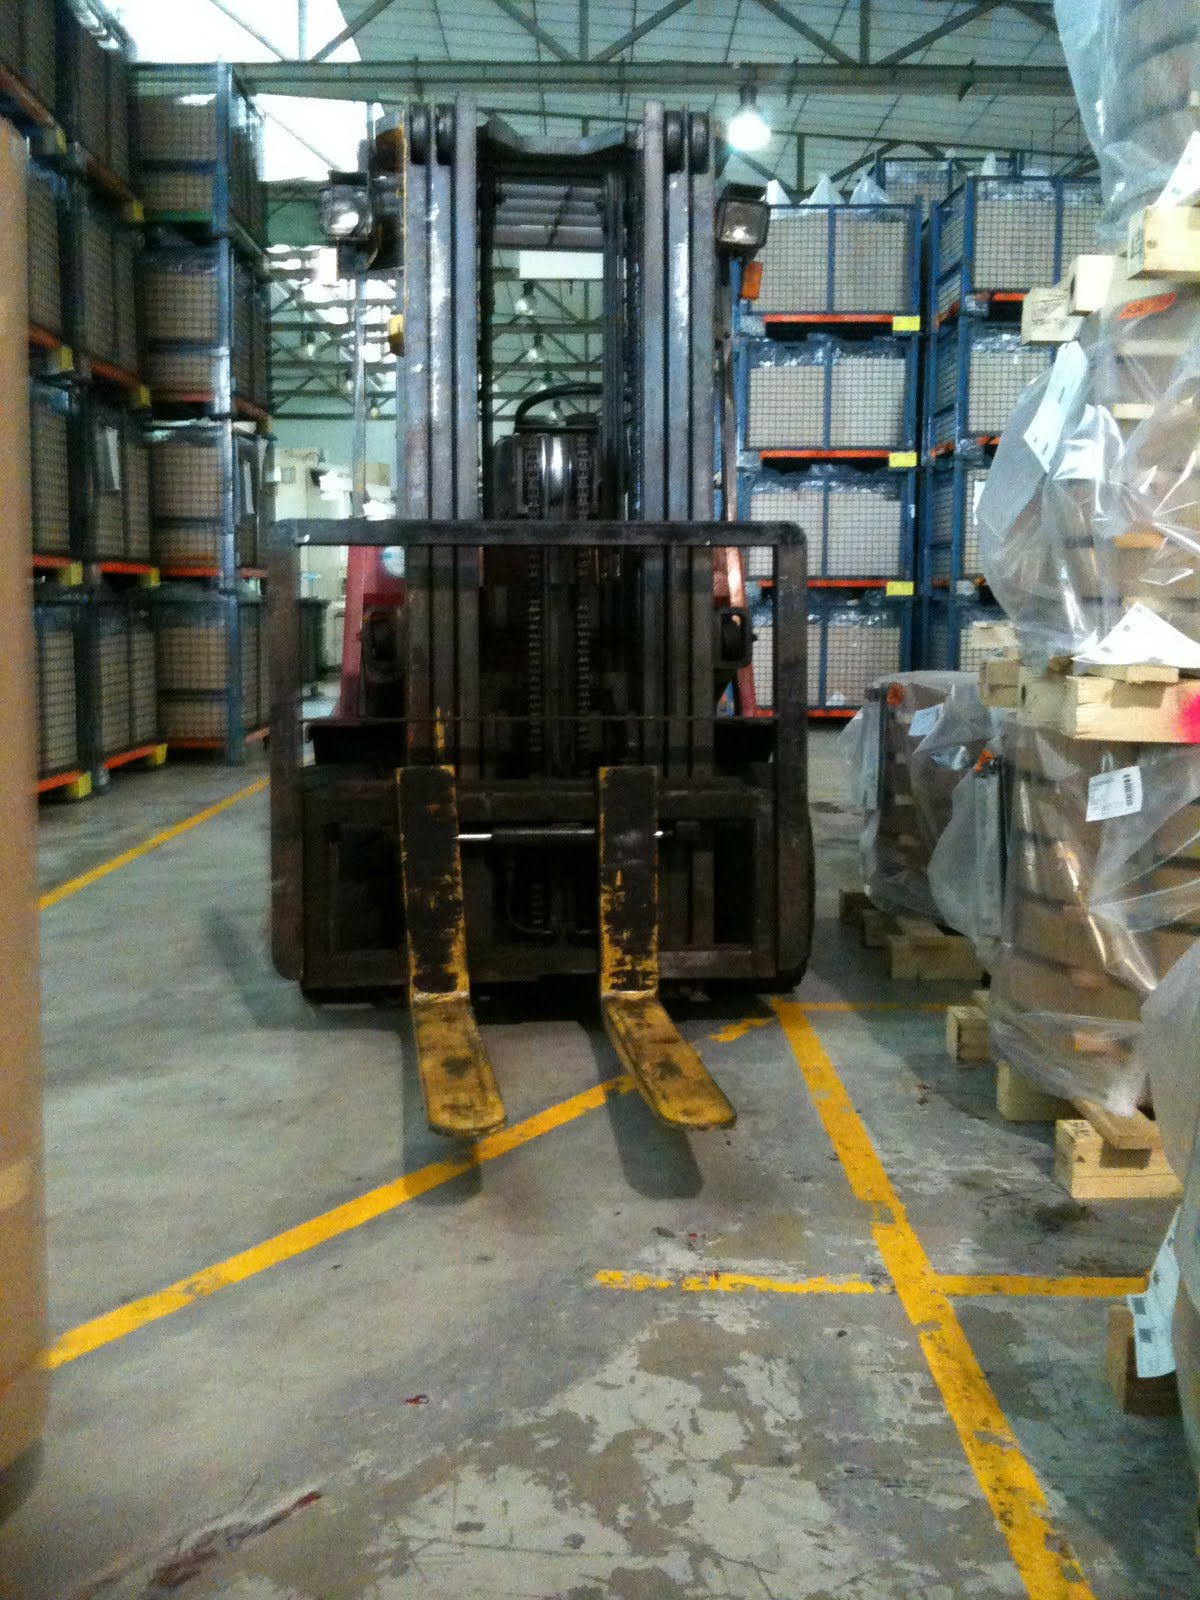 Unsafe Acts In The Workplace http://ehs-singapore.blogspot.com/2010/04/forklift-unsafe-acts-conditions.html